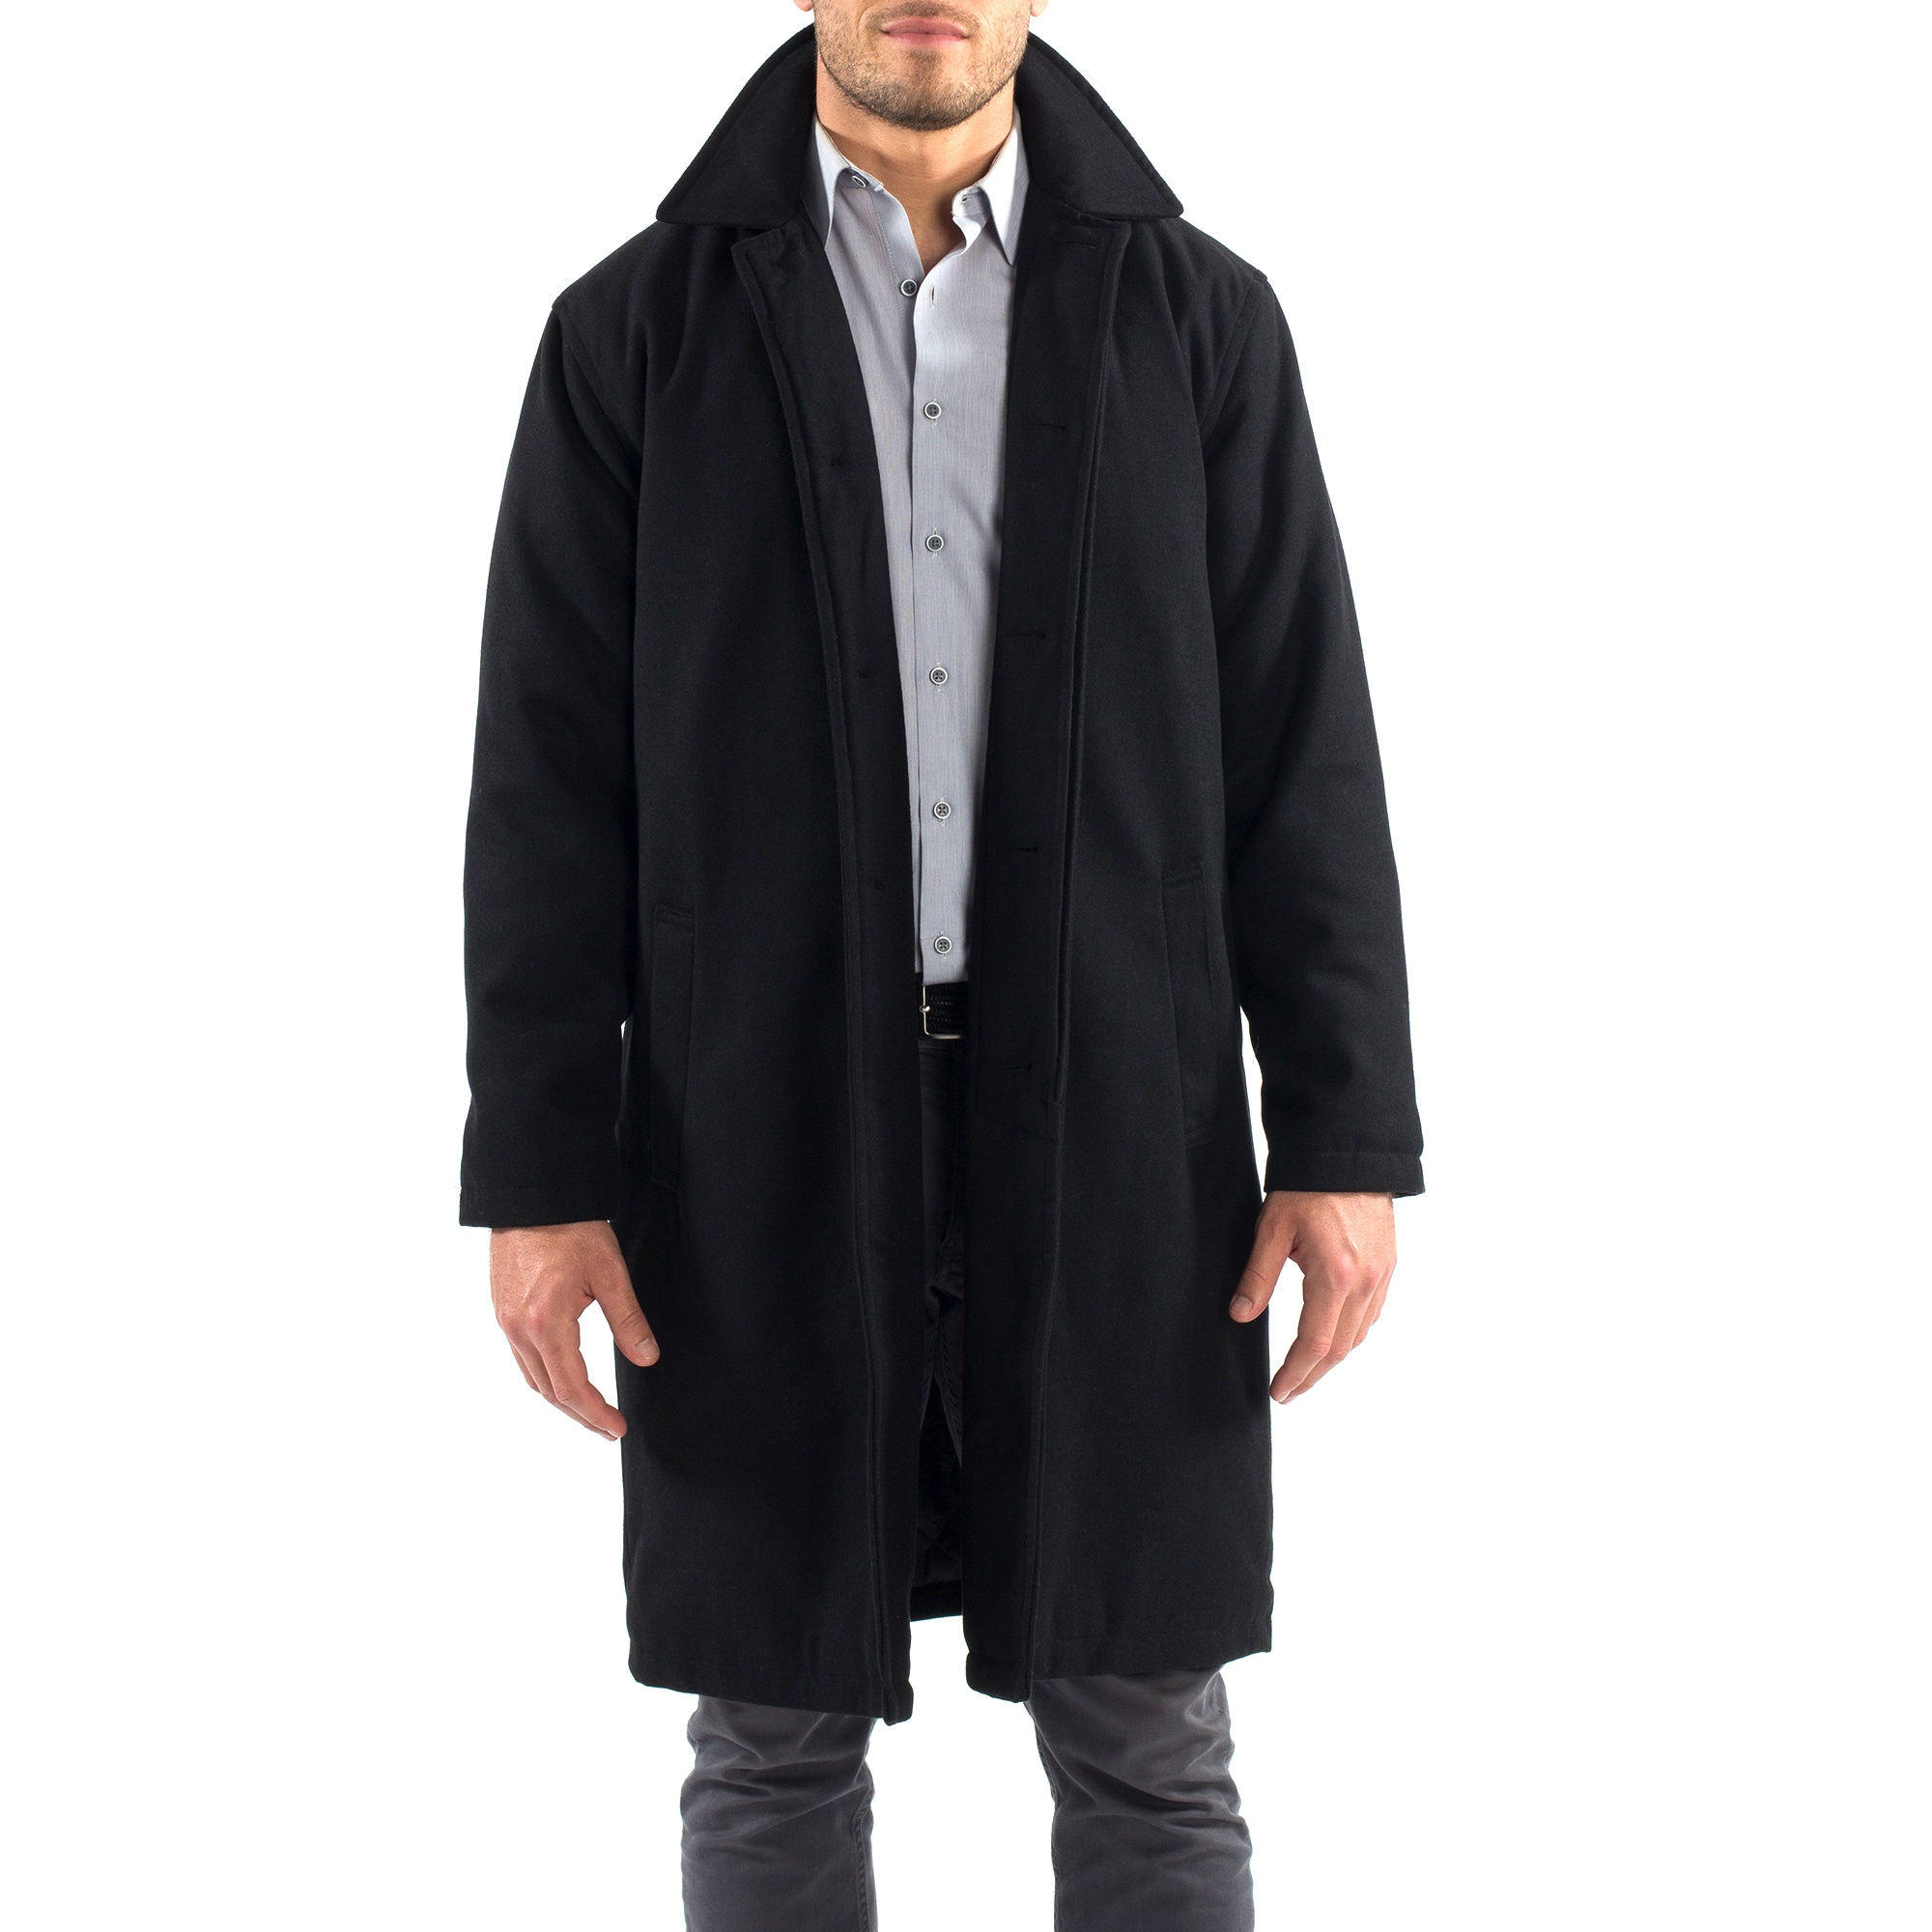 Alpine-Swiss-Mens-Zach-Knee-Length-Jacket-Top-Coat-Trench-Wool-Blend-Overcoat thumbnail 15